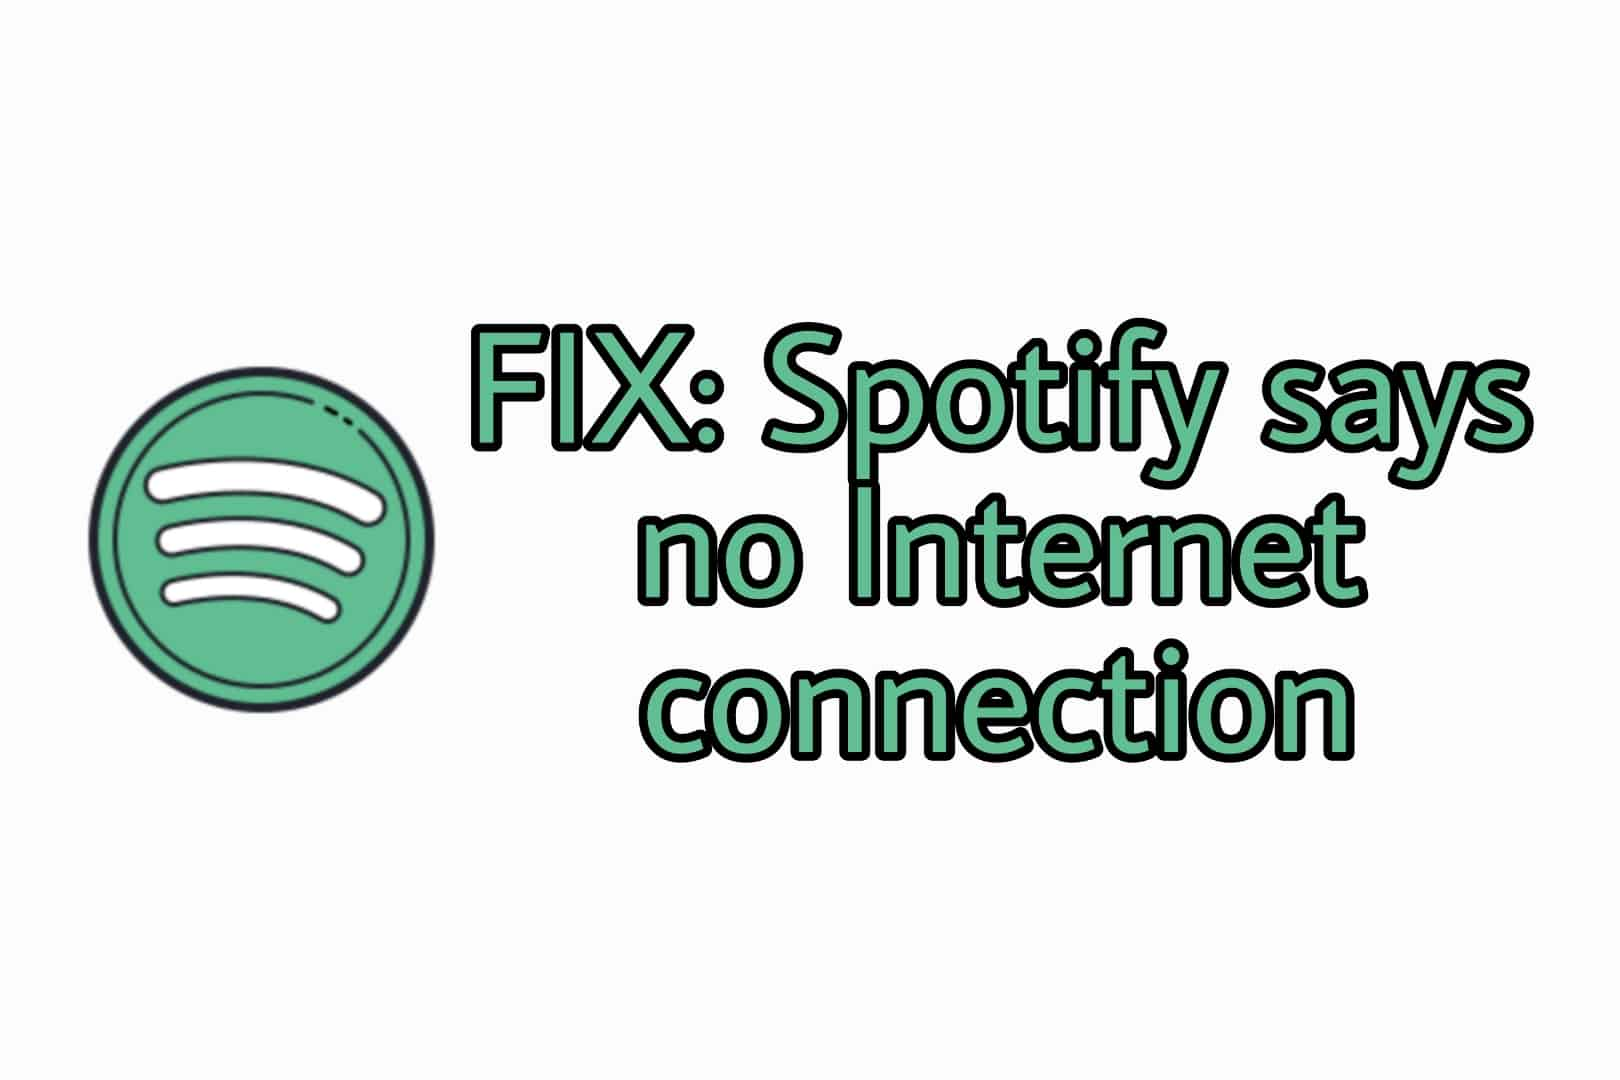 Spotify says no internet connection & songs grey out